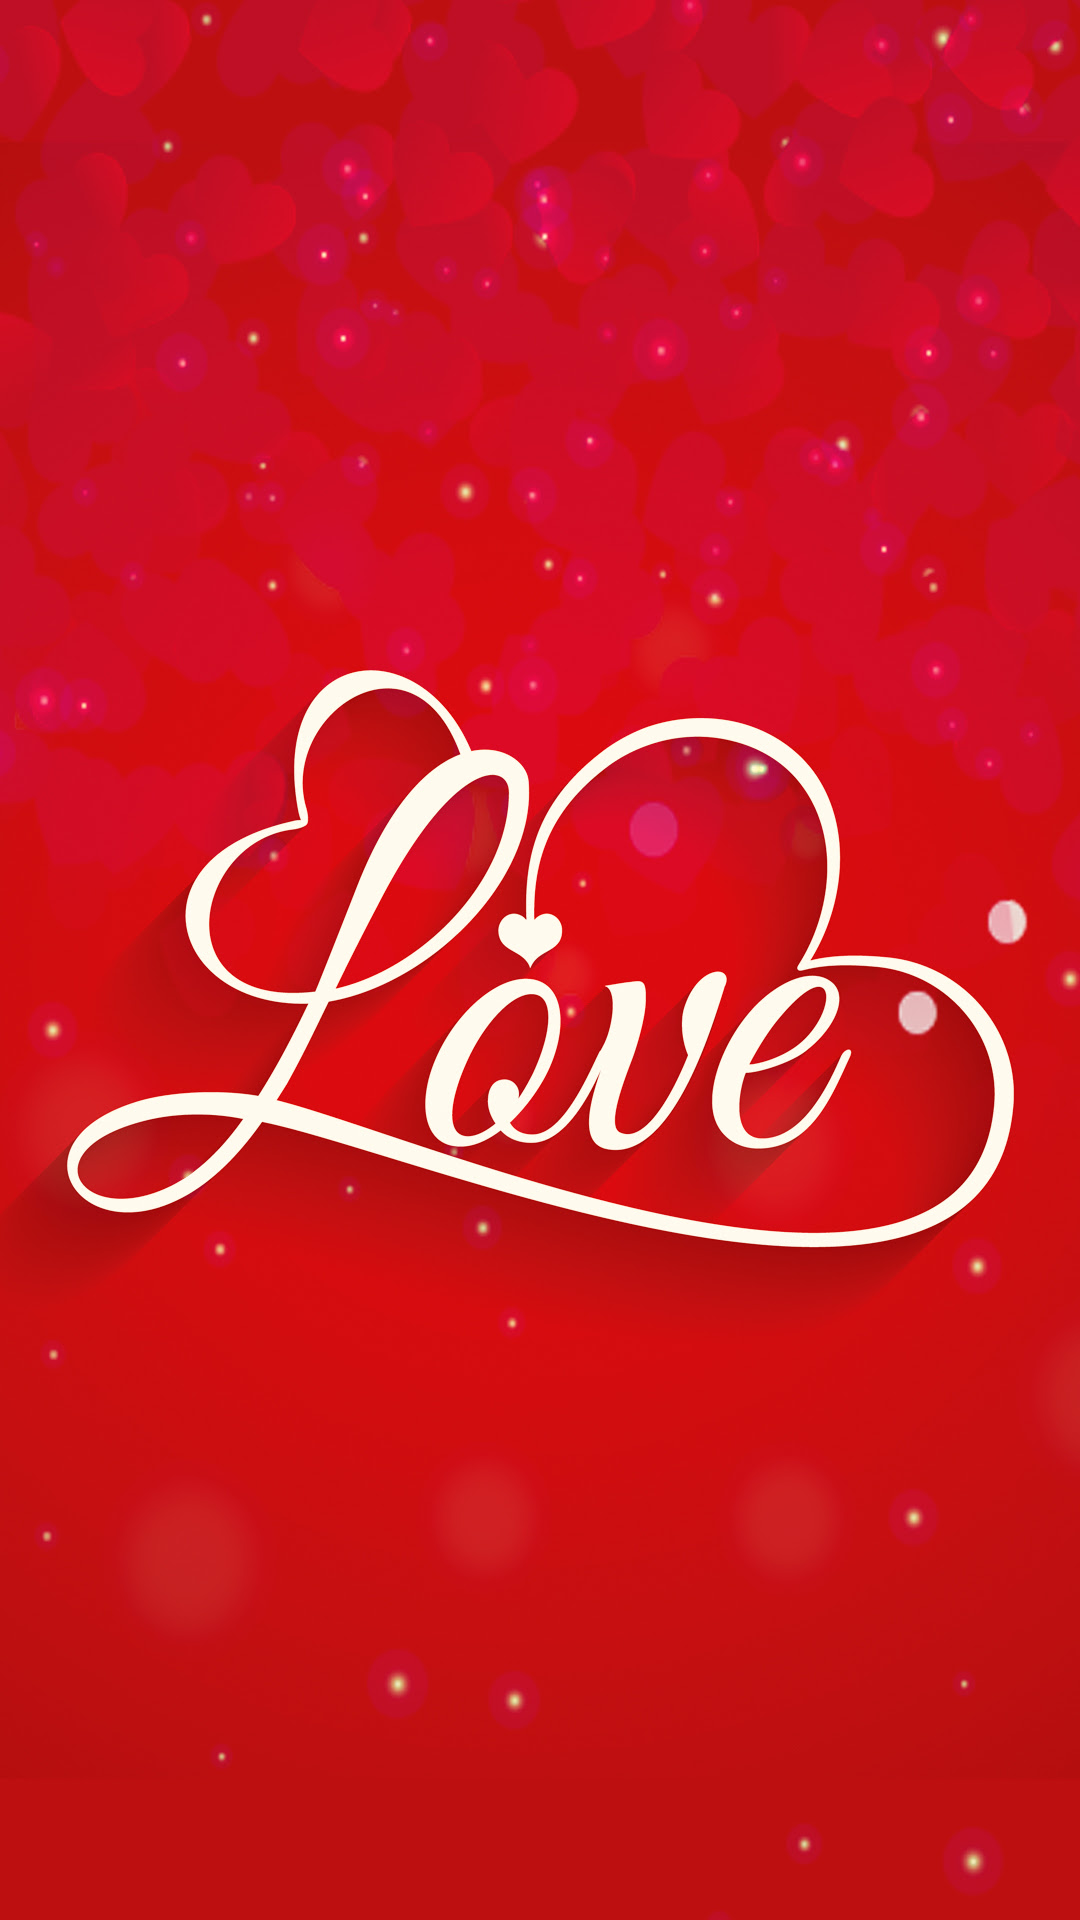 Red Love HD Wallpaper For Your Mobile